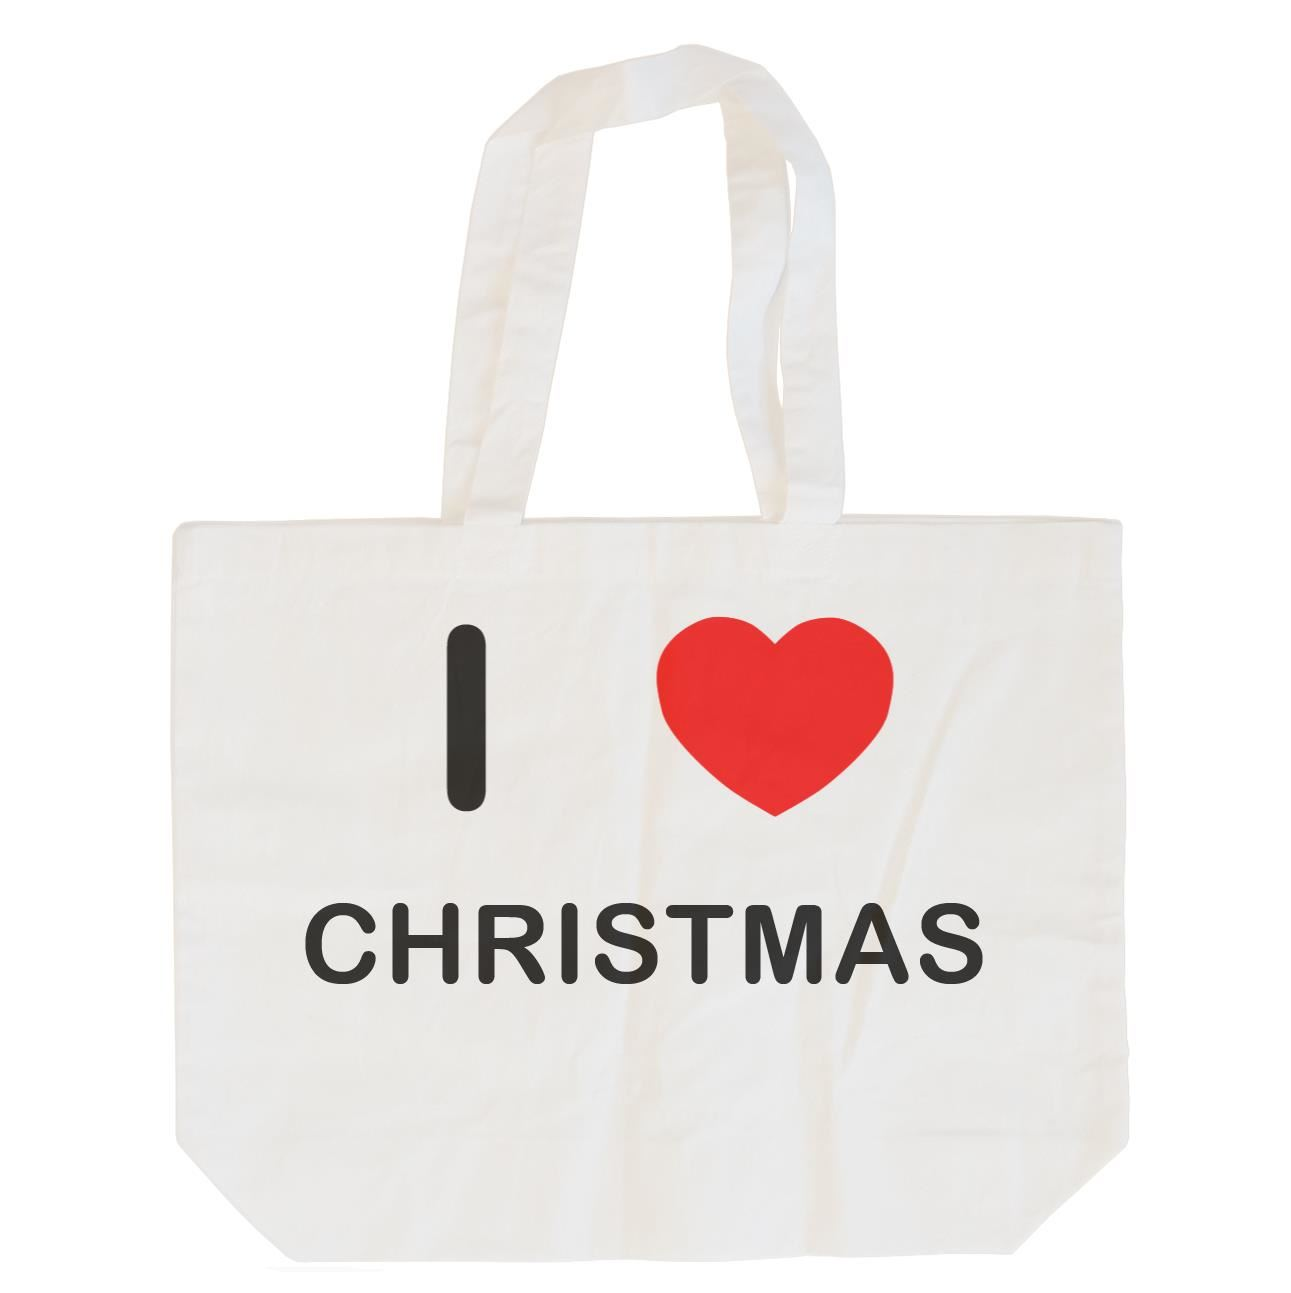 I Love Christmas - Cotton Bag | Size choice Tote, Shopper or Sling